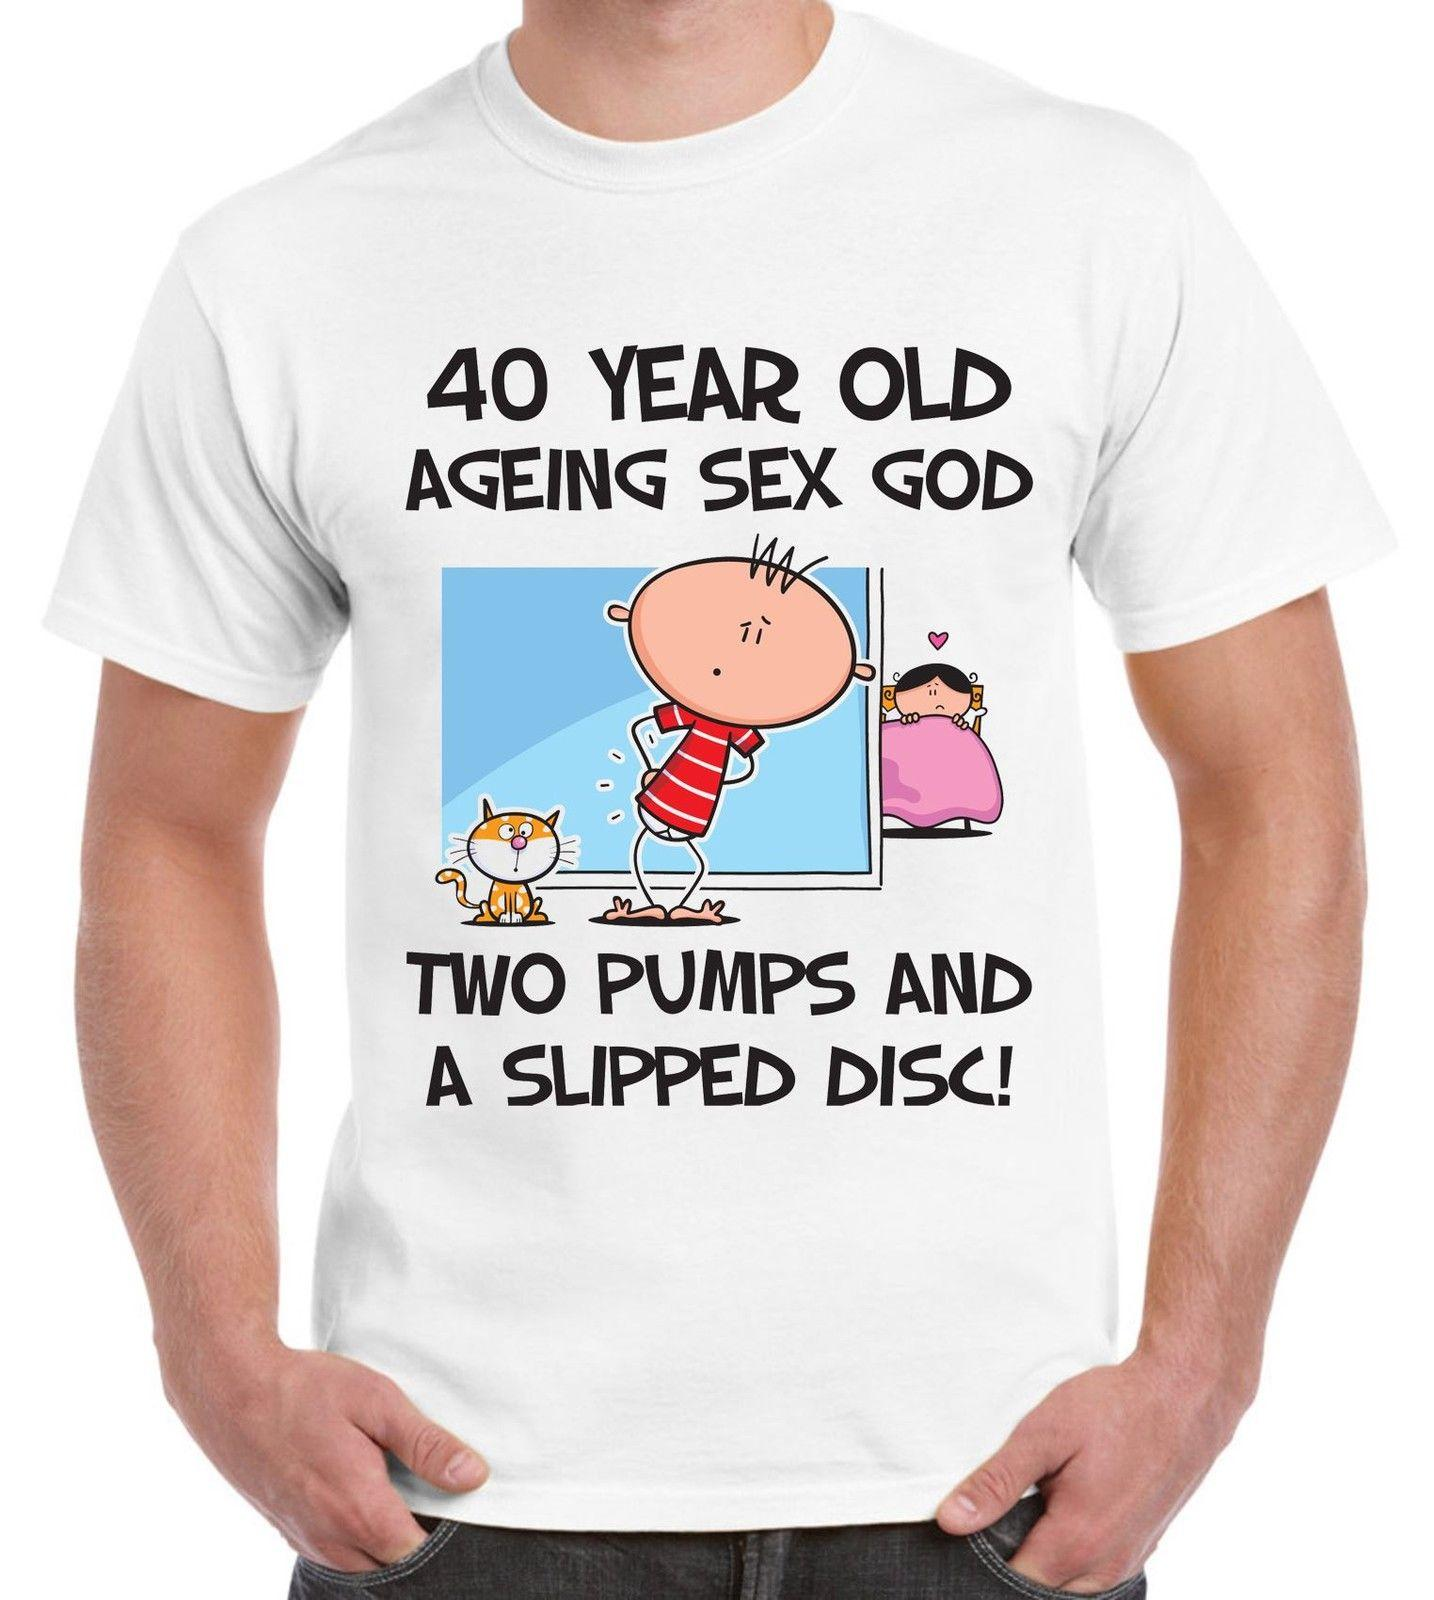 Ageing Sex God 40th Birthday Present MenS T Shirt Funny Gift Slogan Cartoon Men Unisex New Fashion Geek Shirts Mens Formal From